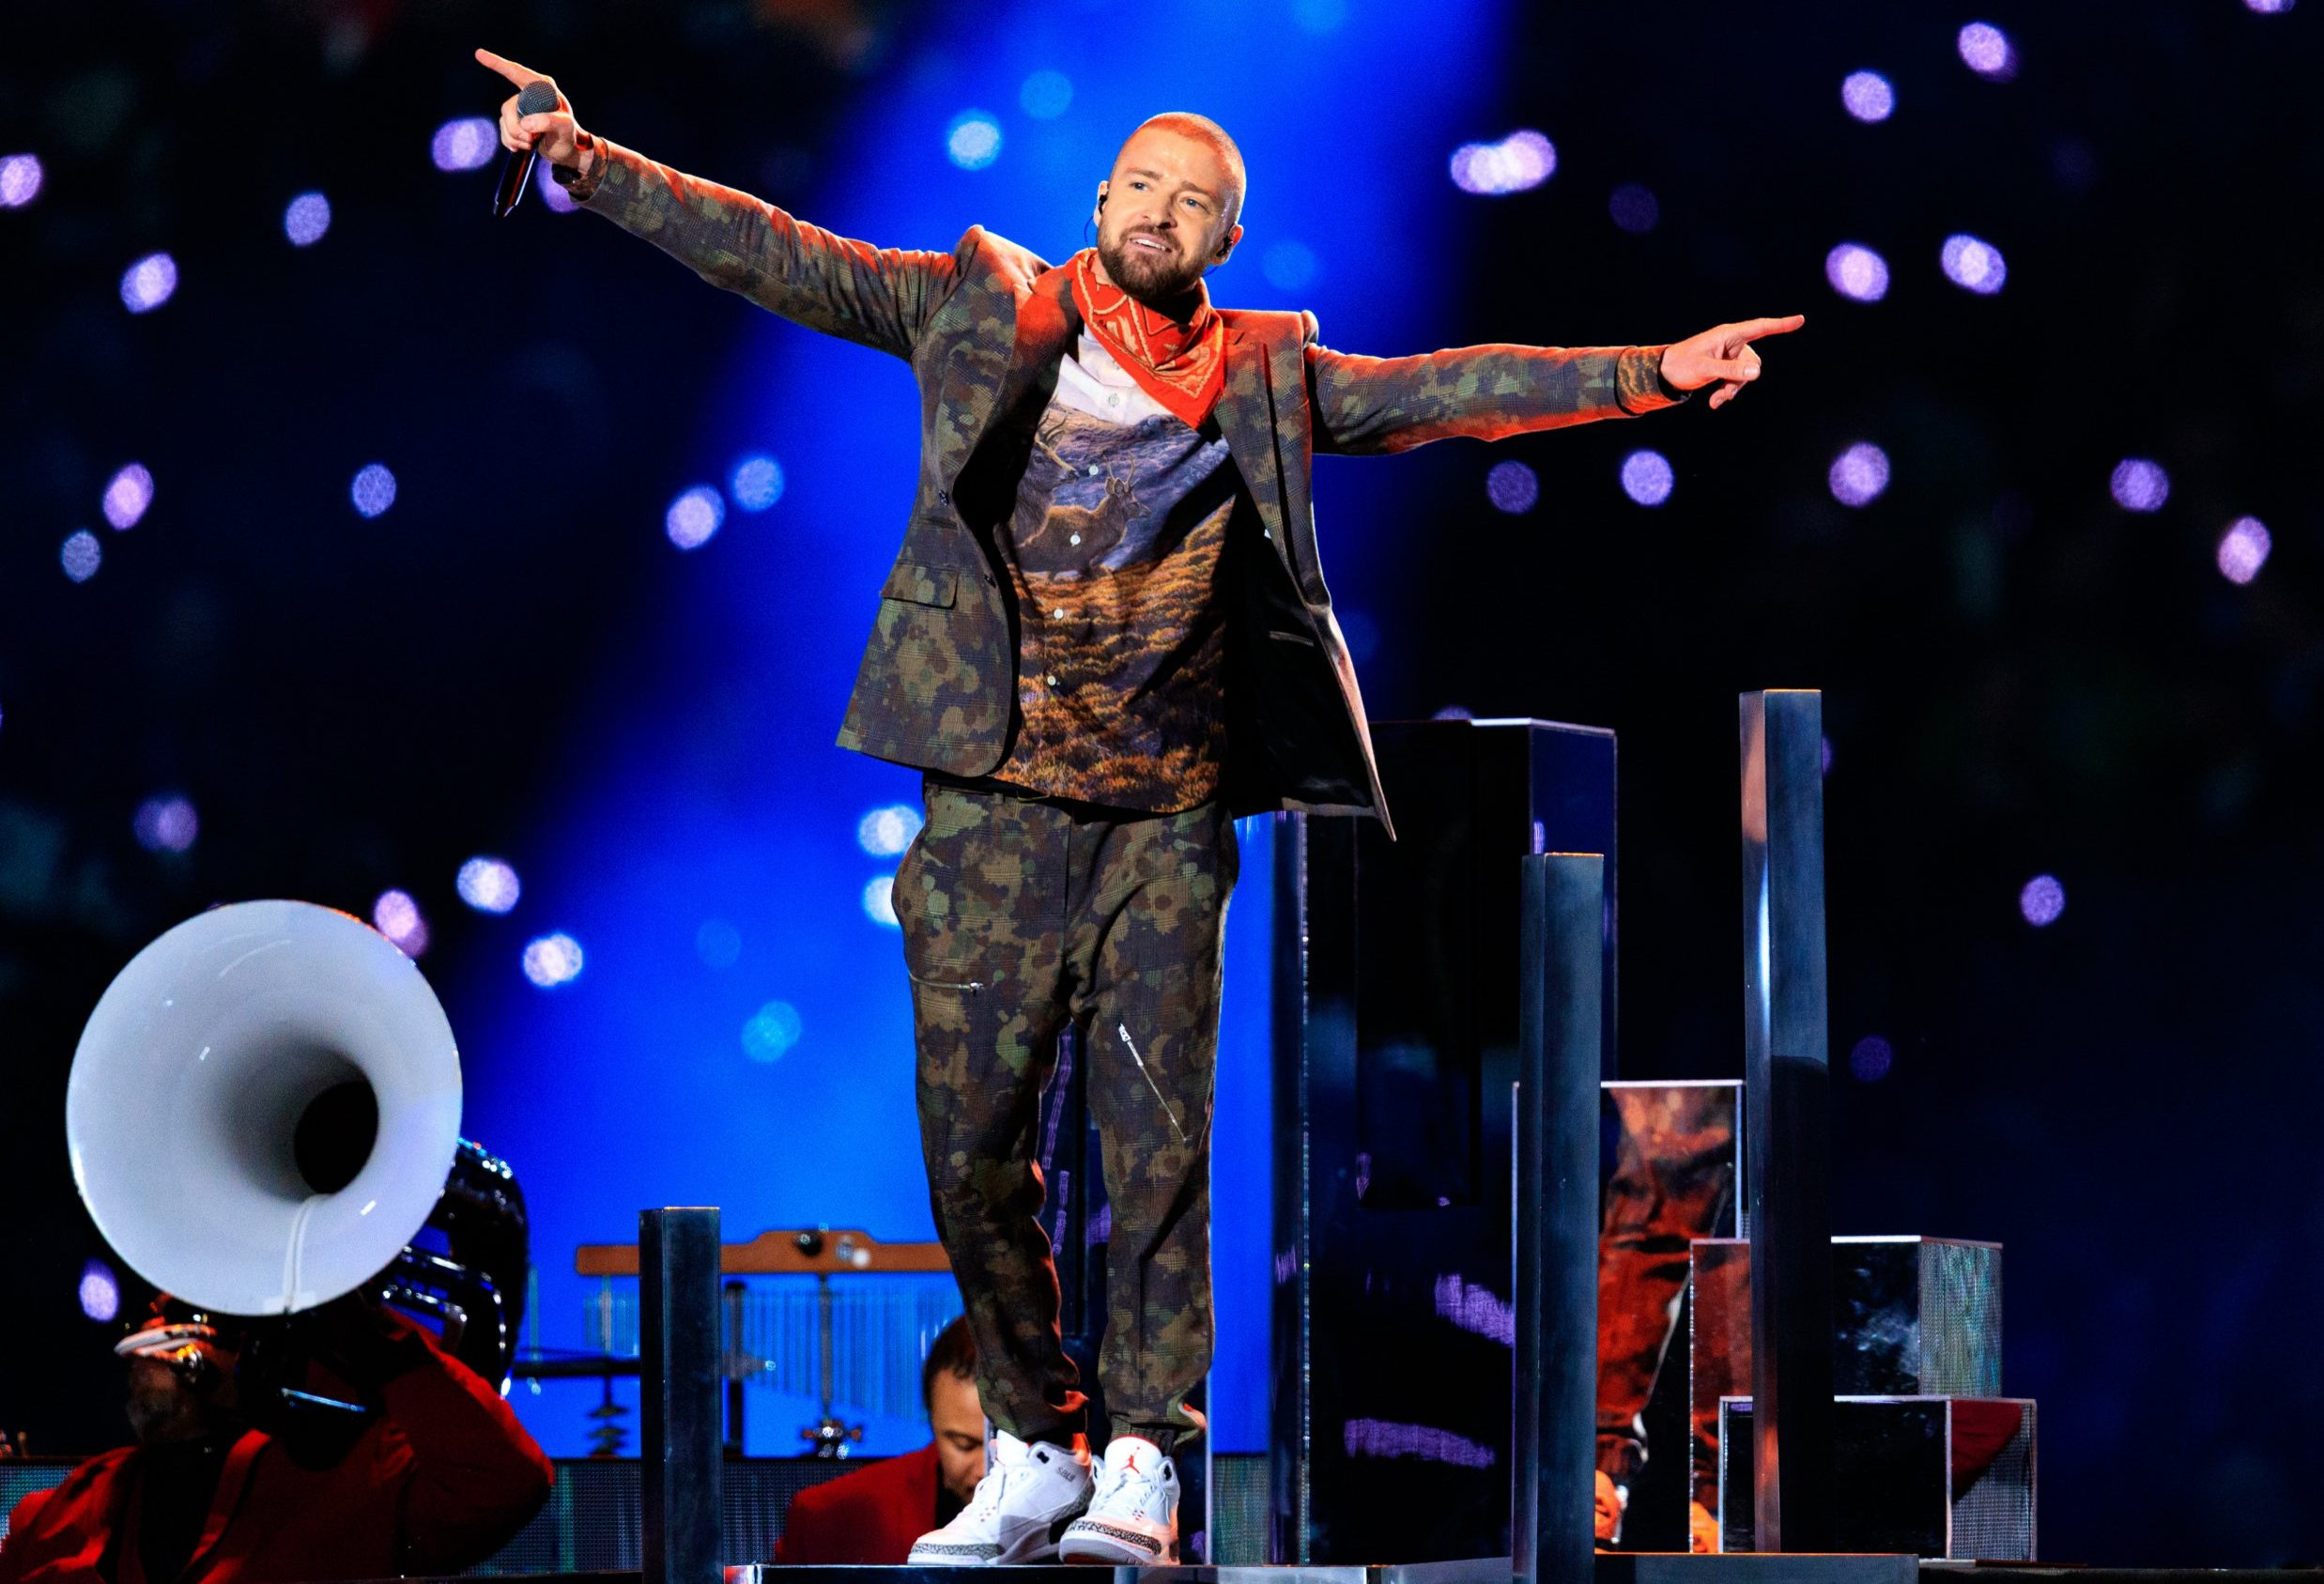 Justin Timberlake's Super Bowl performance might have been panned, but he could have the last laugh